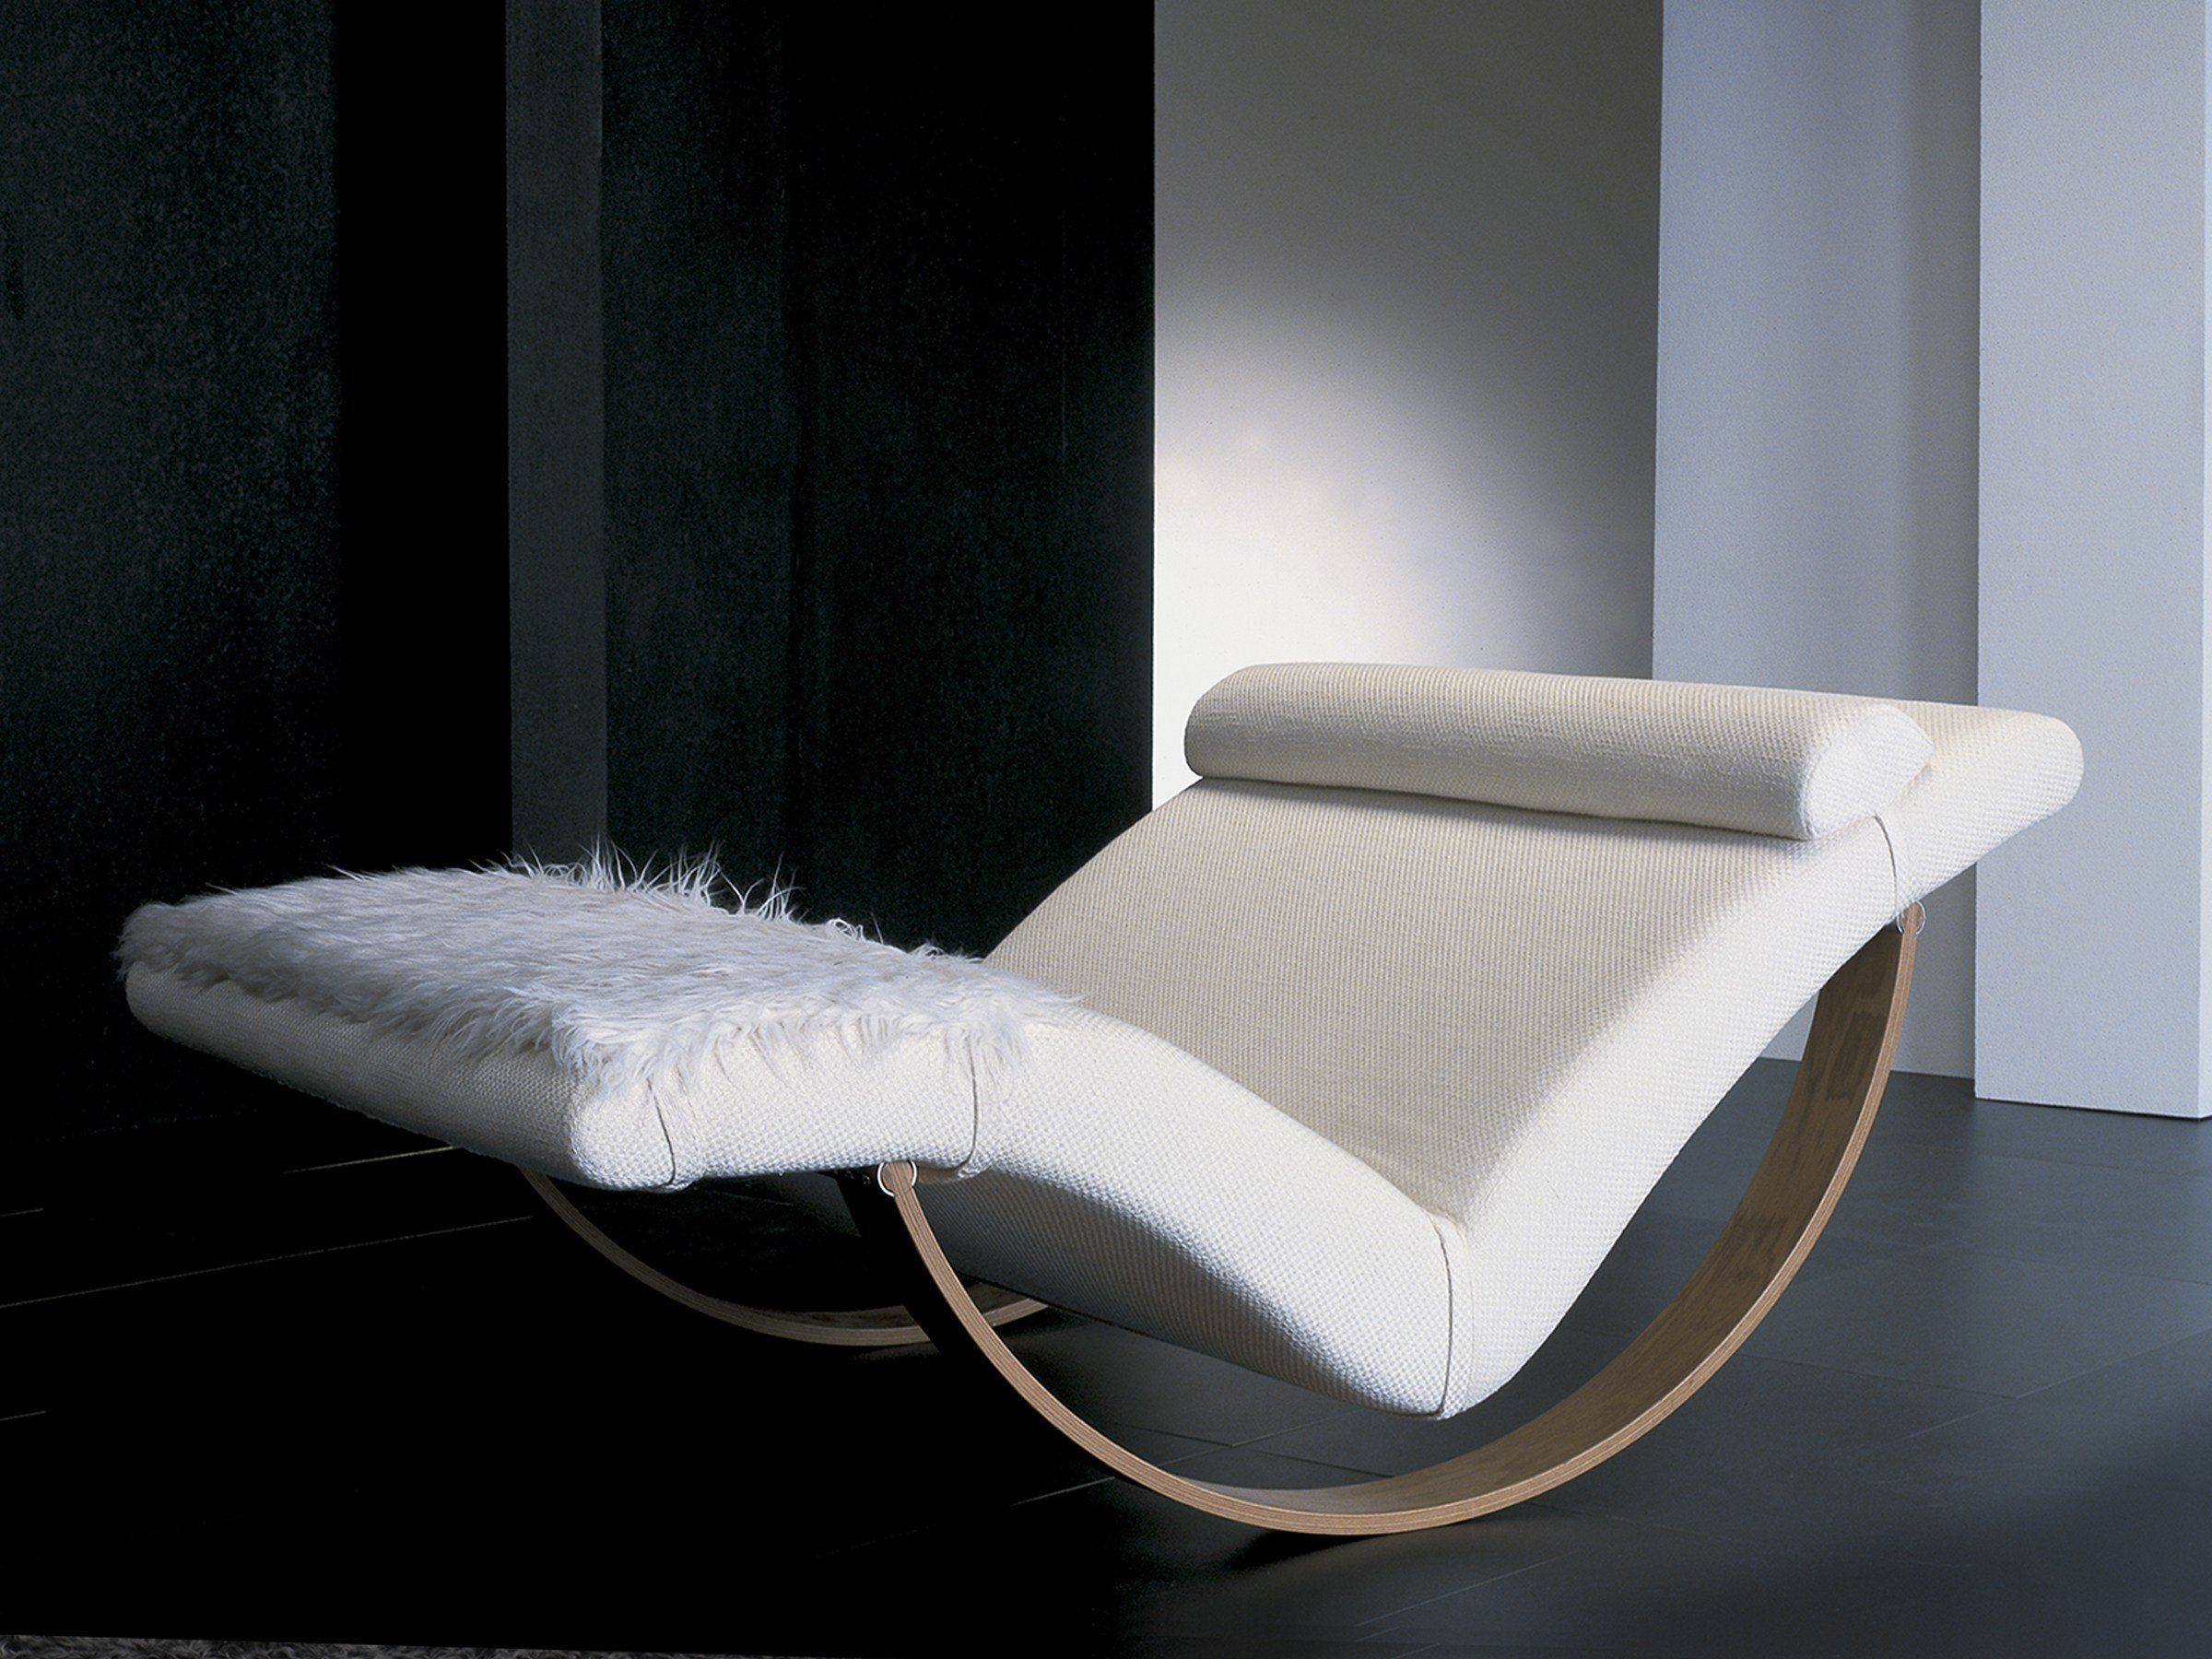 chaise longue estofada design gabbiano by giovannetti. Black Bedroom Furniture Sets. Home Design Ideas